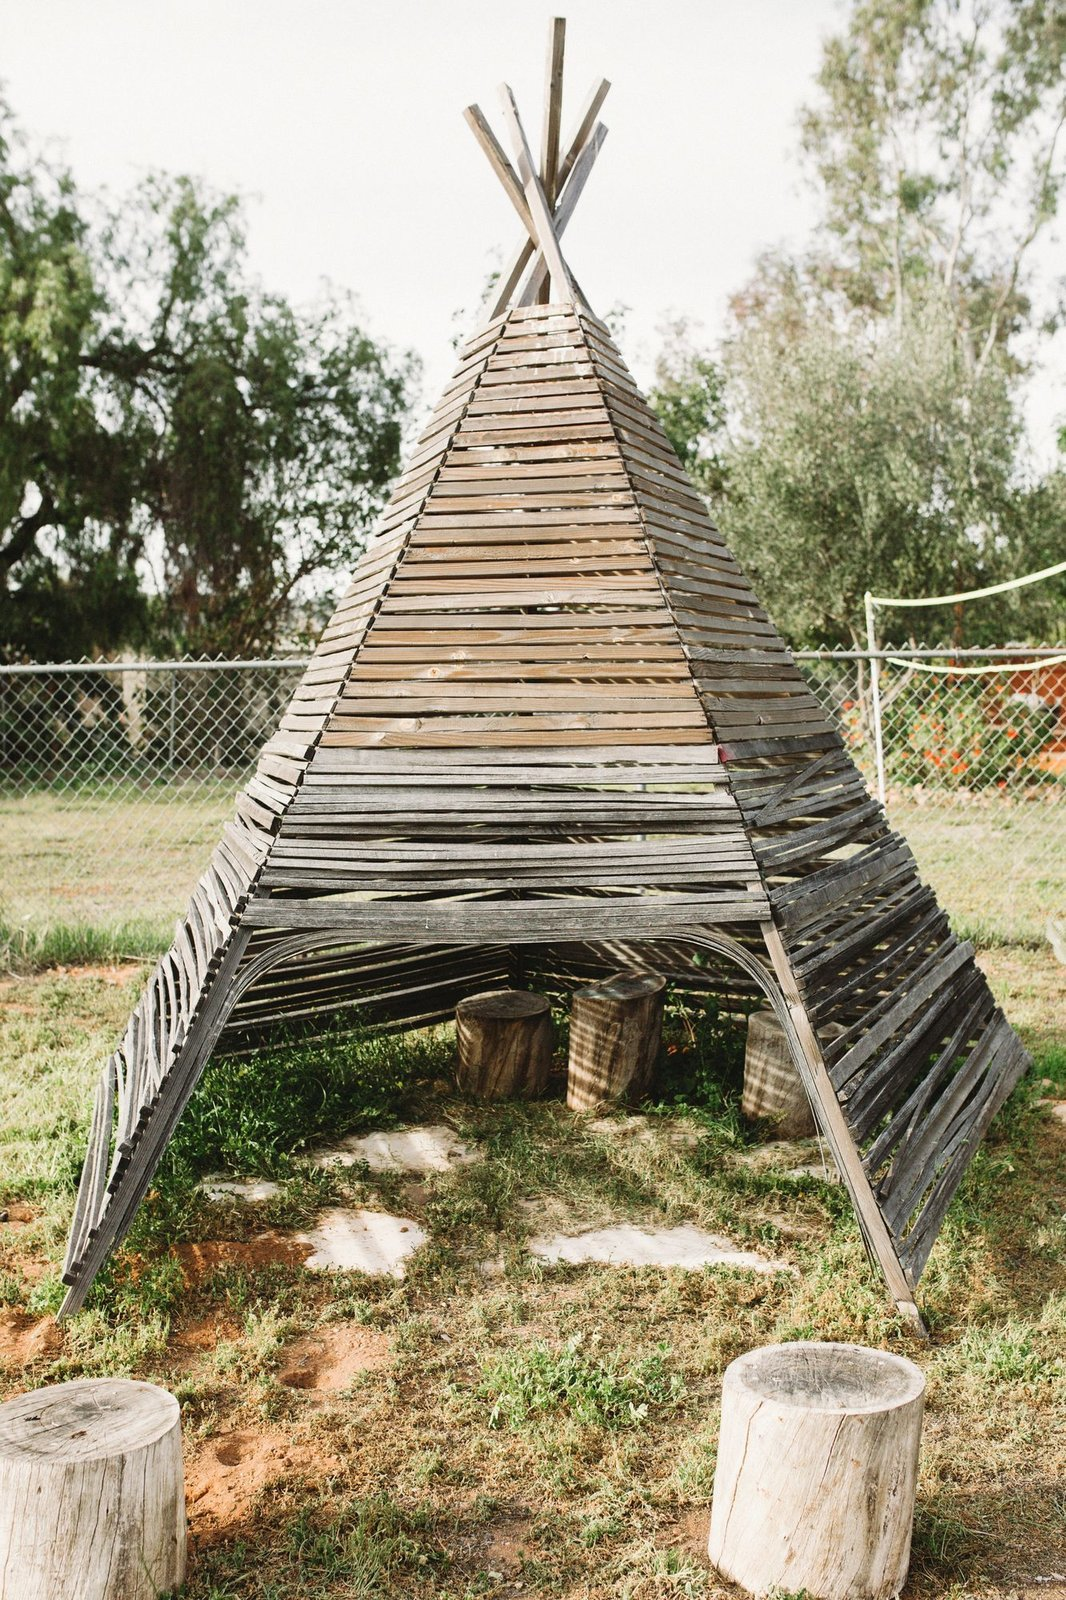 Outdoor, Grass, and Wire Fences, Wall The teepee is also handmade, and reflective of the earthy, bohemian, and yet kid-friendly style the Wheelers are all about.  Photos from Too Cool: This Boho Surf Shack Has a Half-Pipe in the Backyard